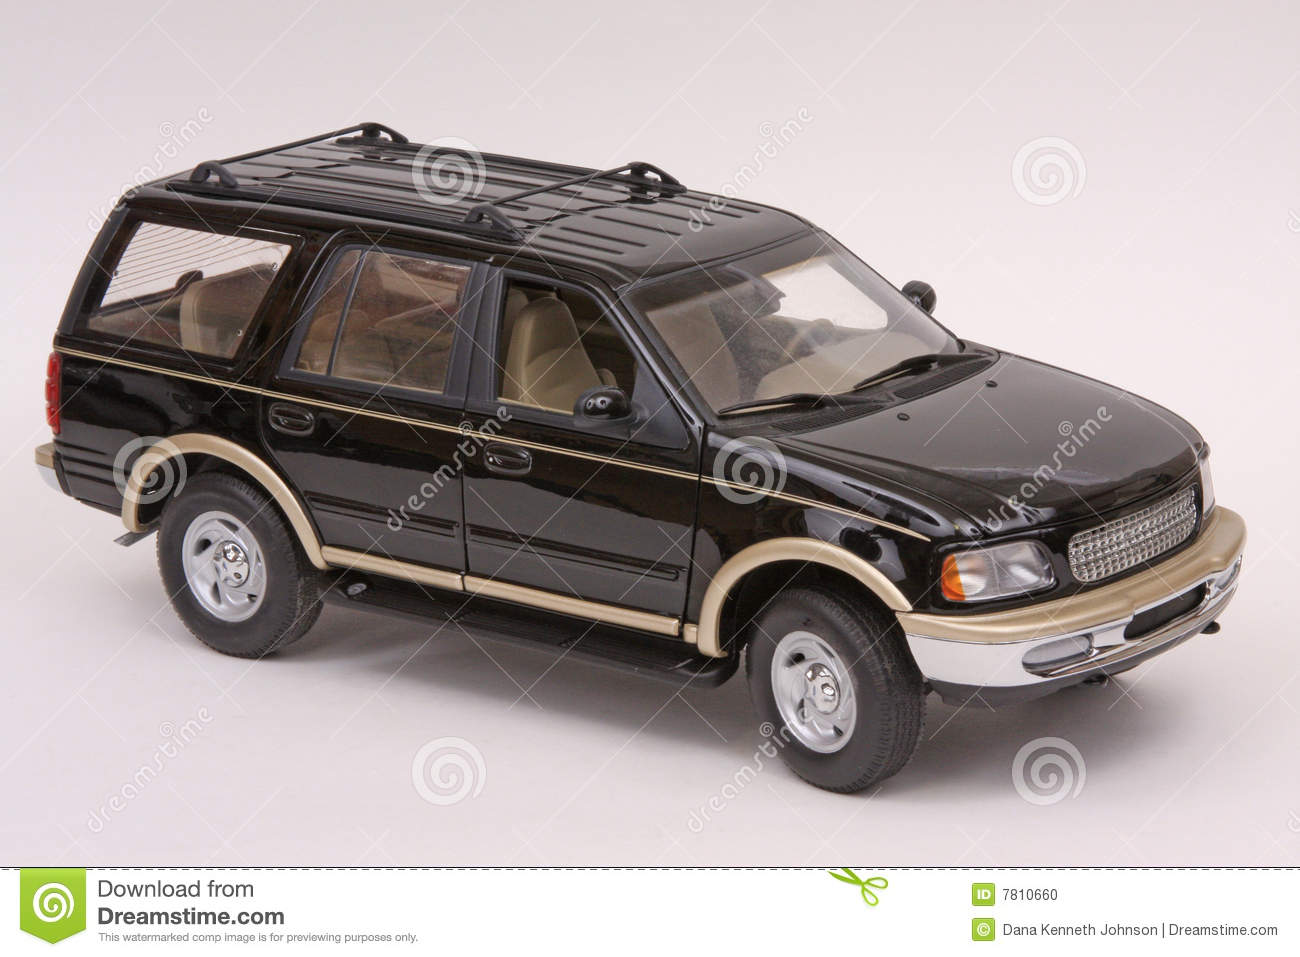 diecast expedition ford scale white model cars die suv toy ... & Ford Expedition Stock Photo - Image: 7810660 markmcfarlin.com